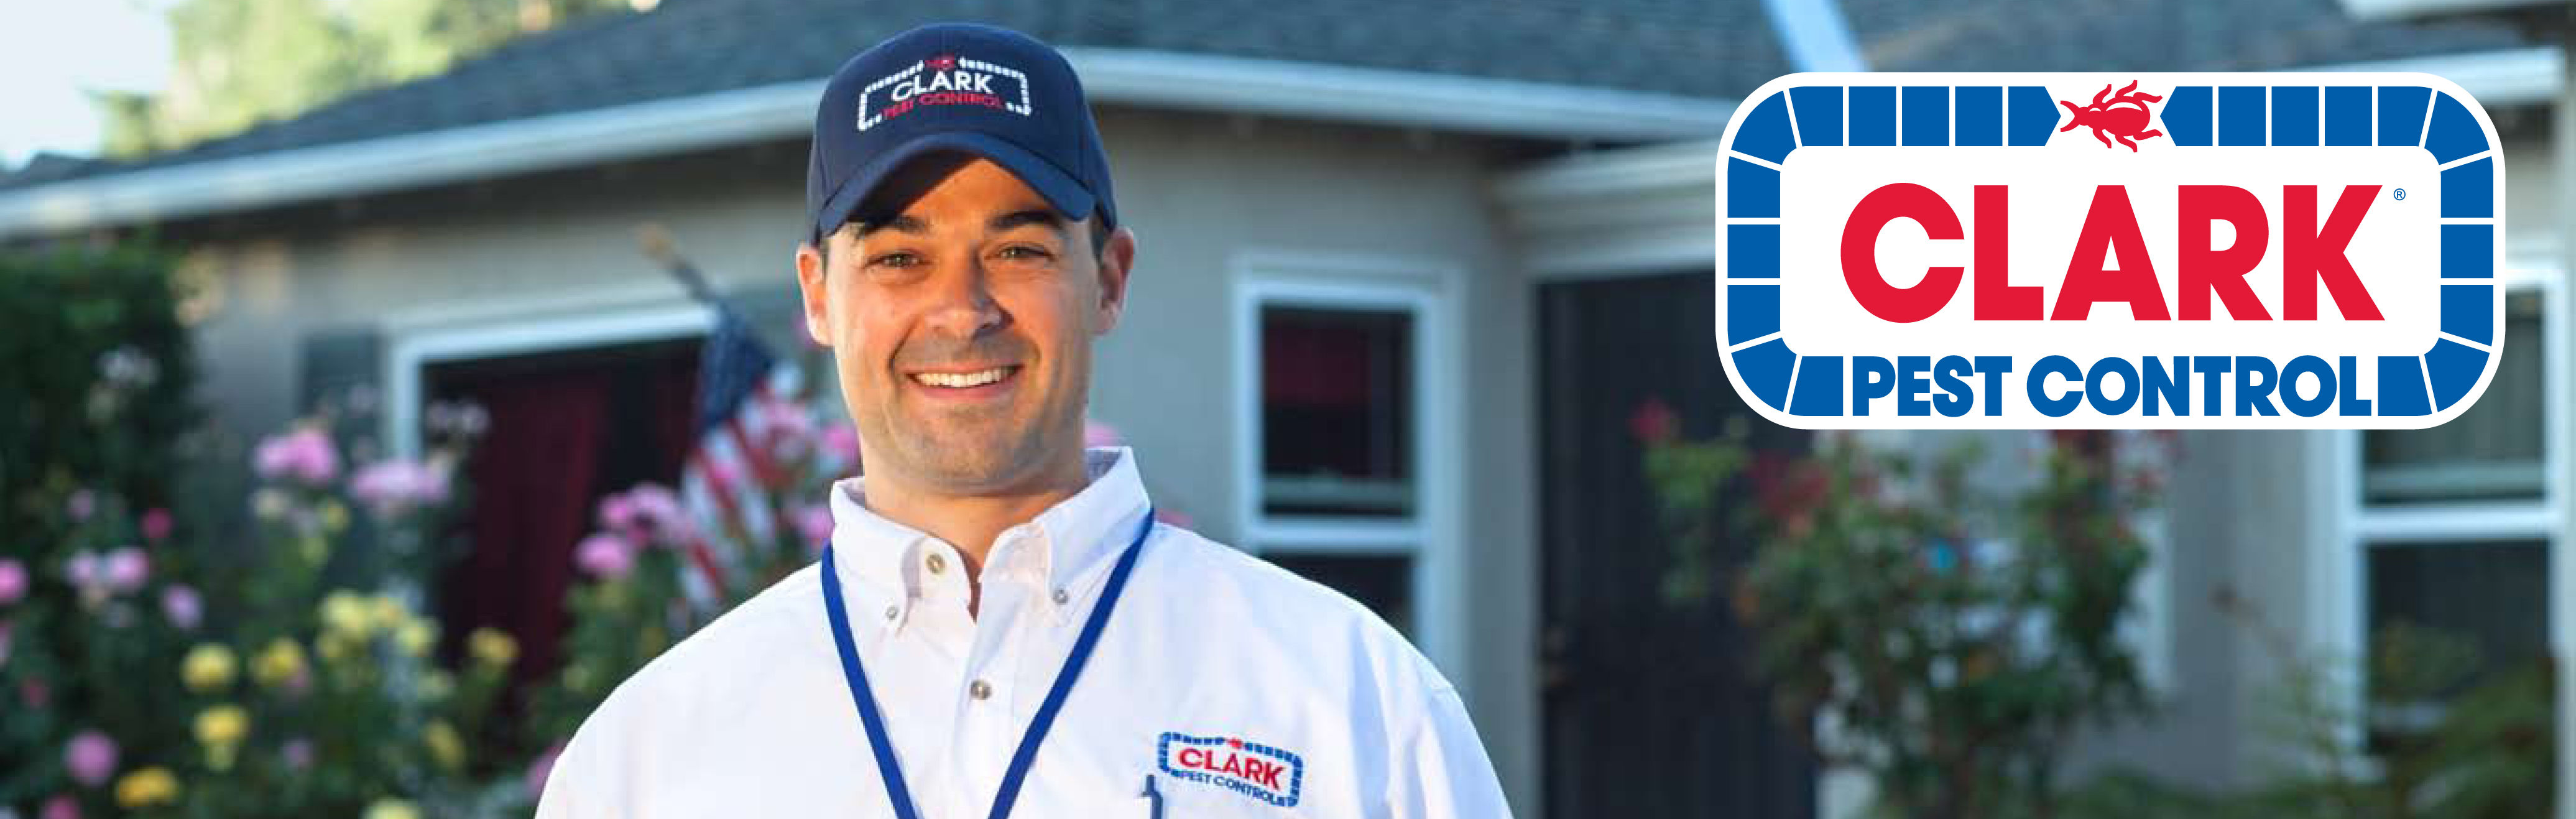 Clark Pest Control | Pest Control in Corporate Office - Lodi CA - Reviews - Photos - Phone Number